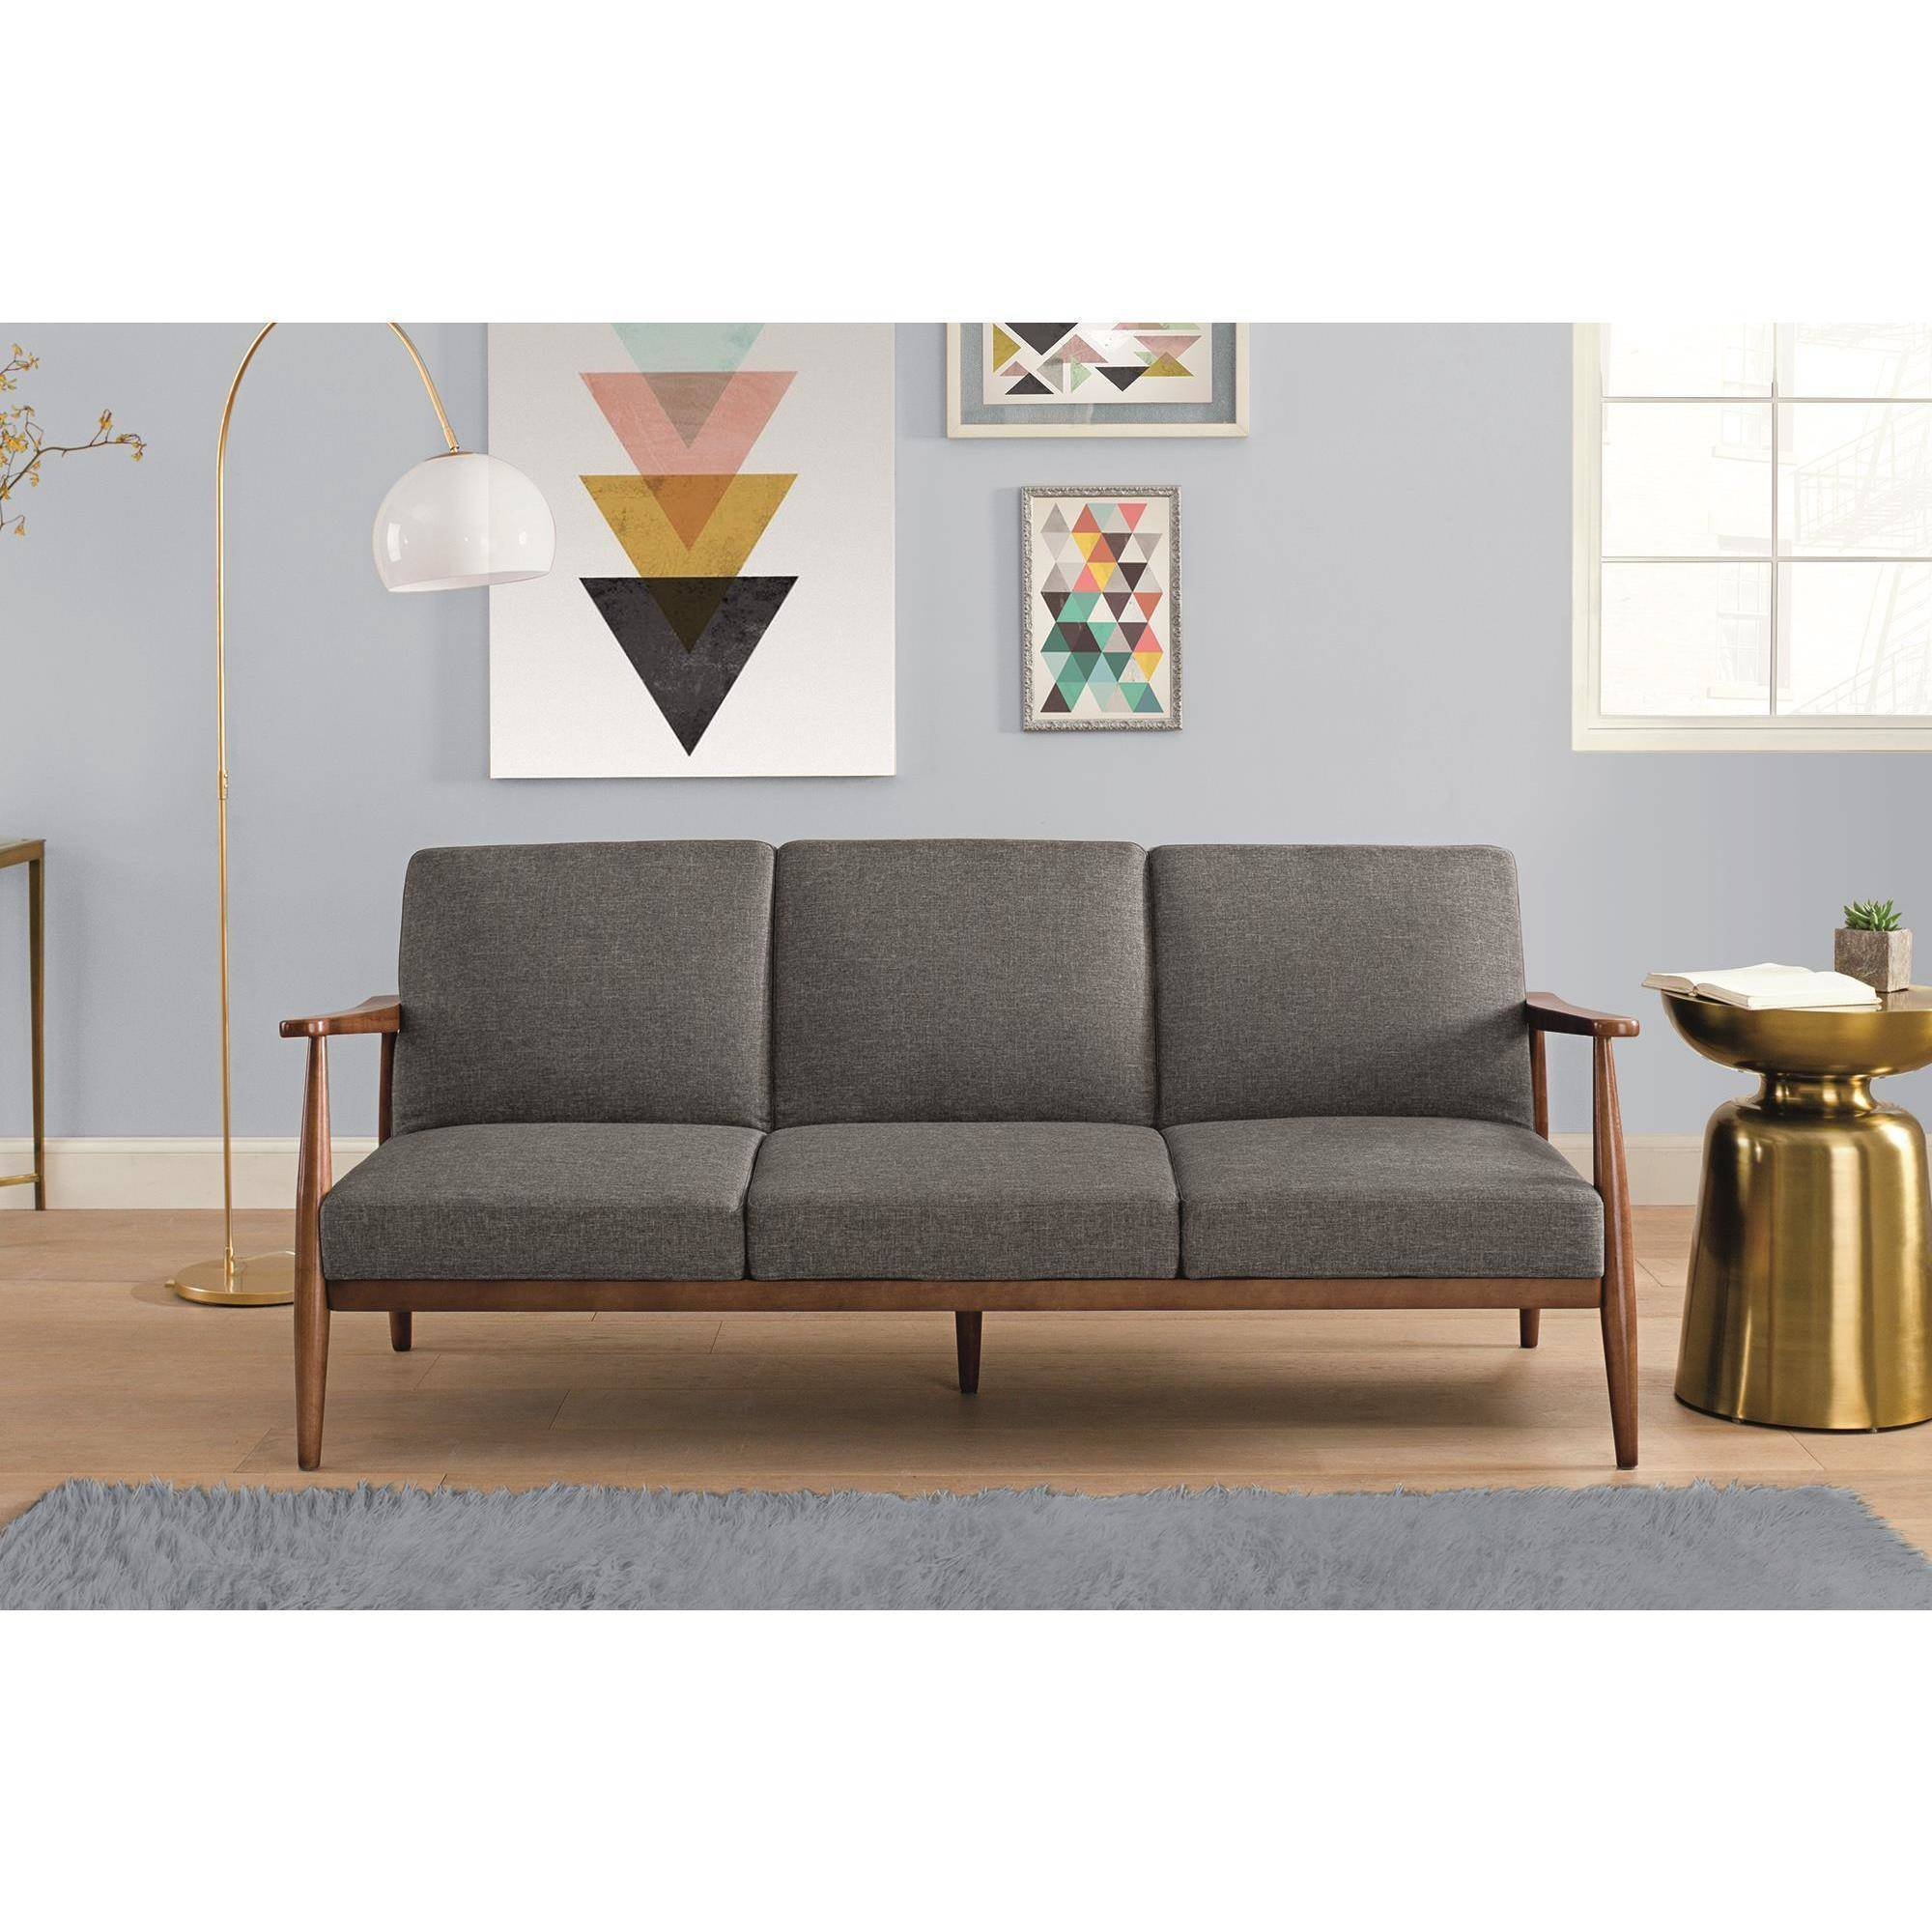 Better homes and gardens flynn mid century futon multiple colors ebay for Walmart better homes and gardens futon